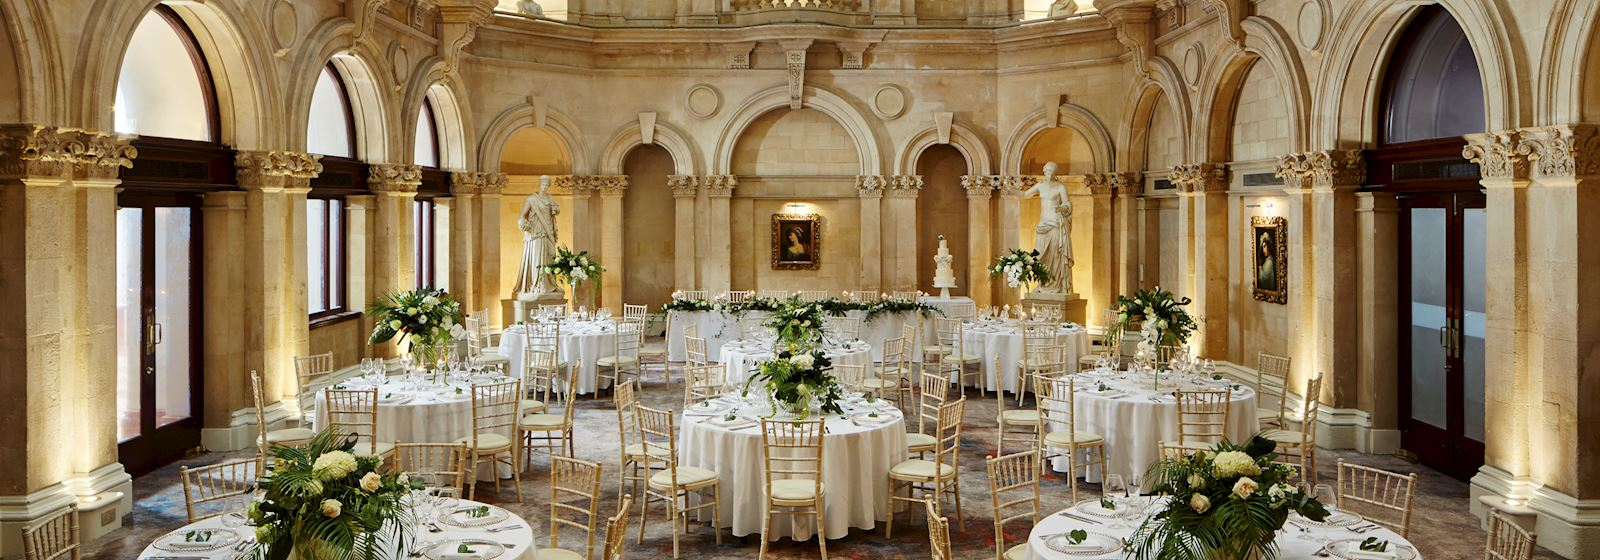 Bristol Marriott Royal Hotel Weddings